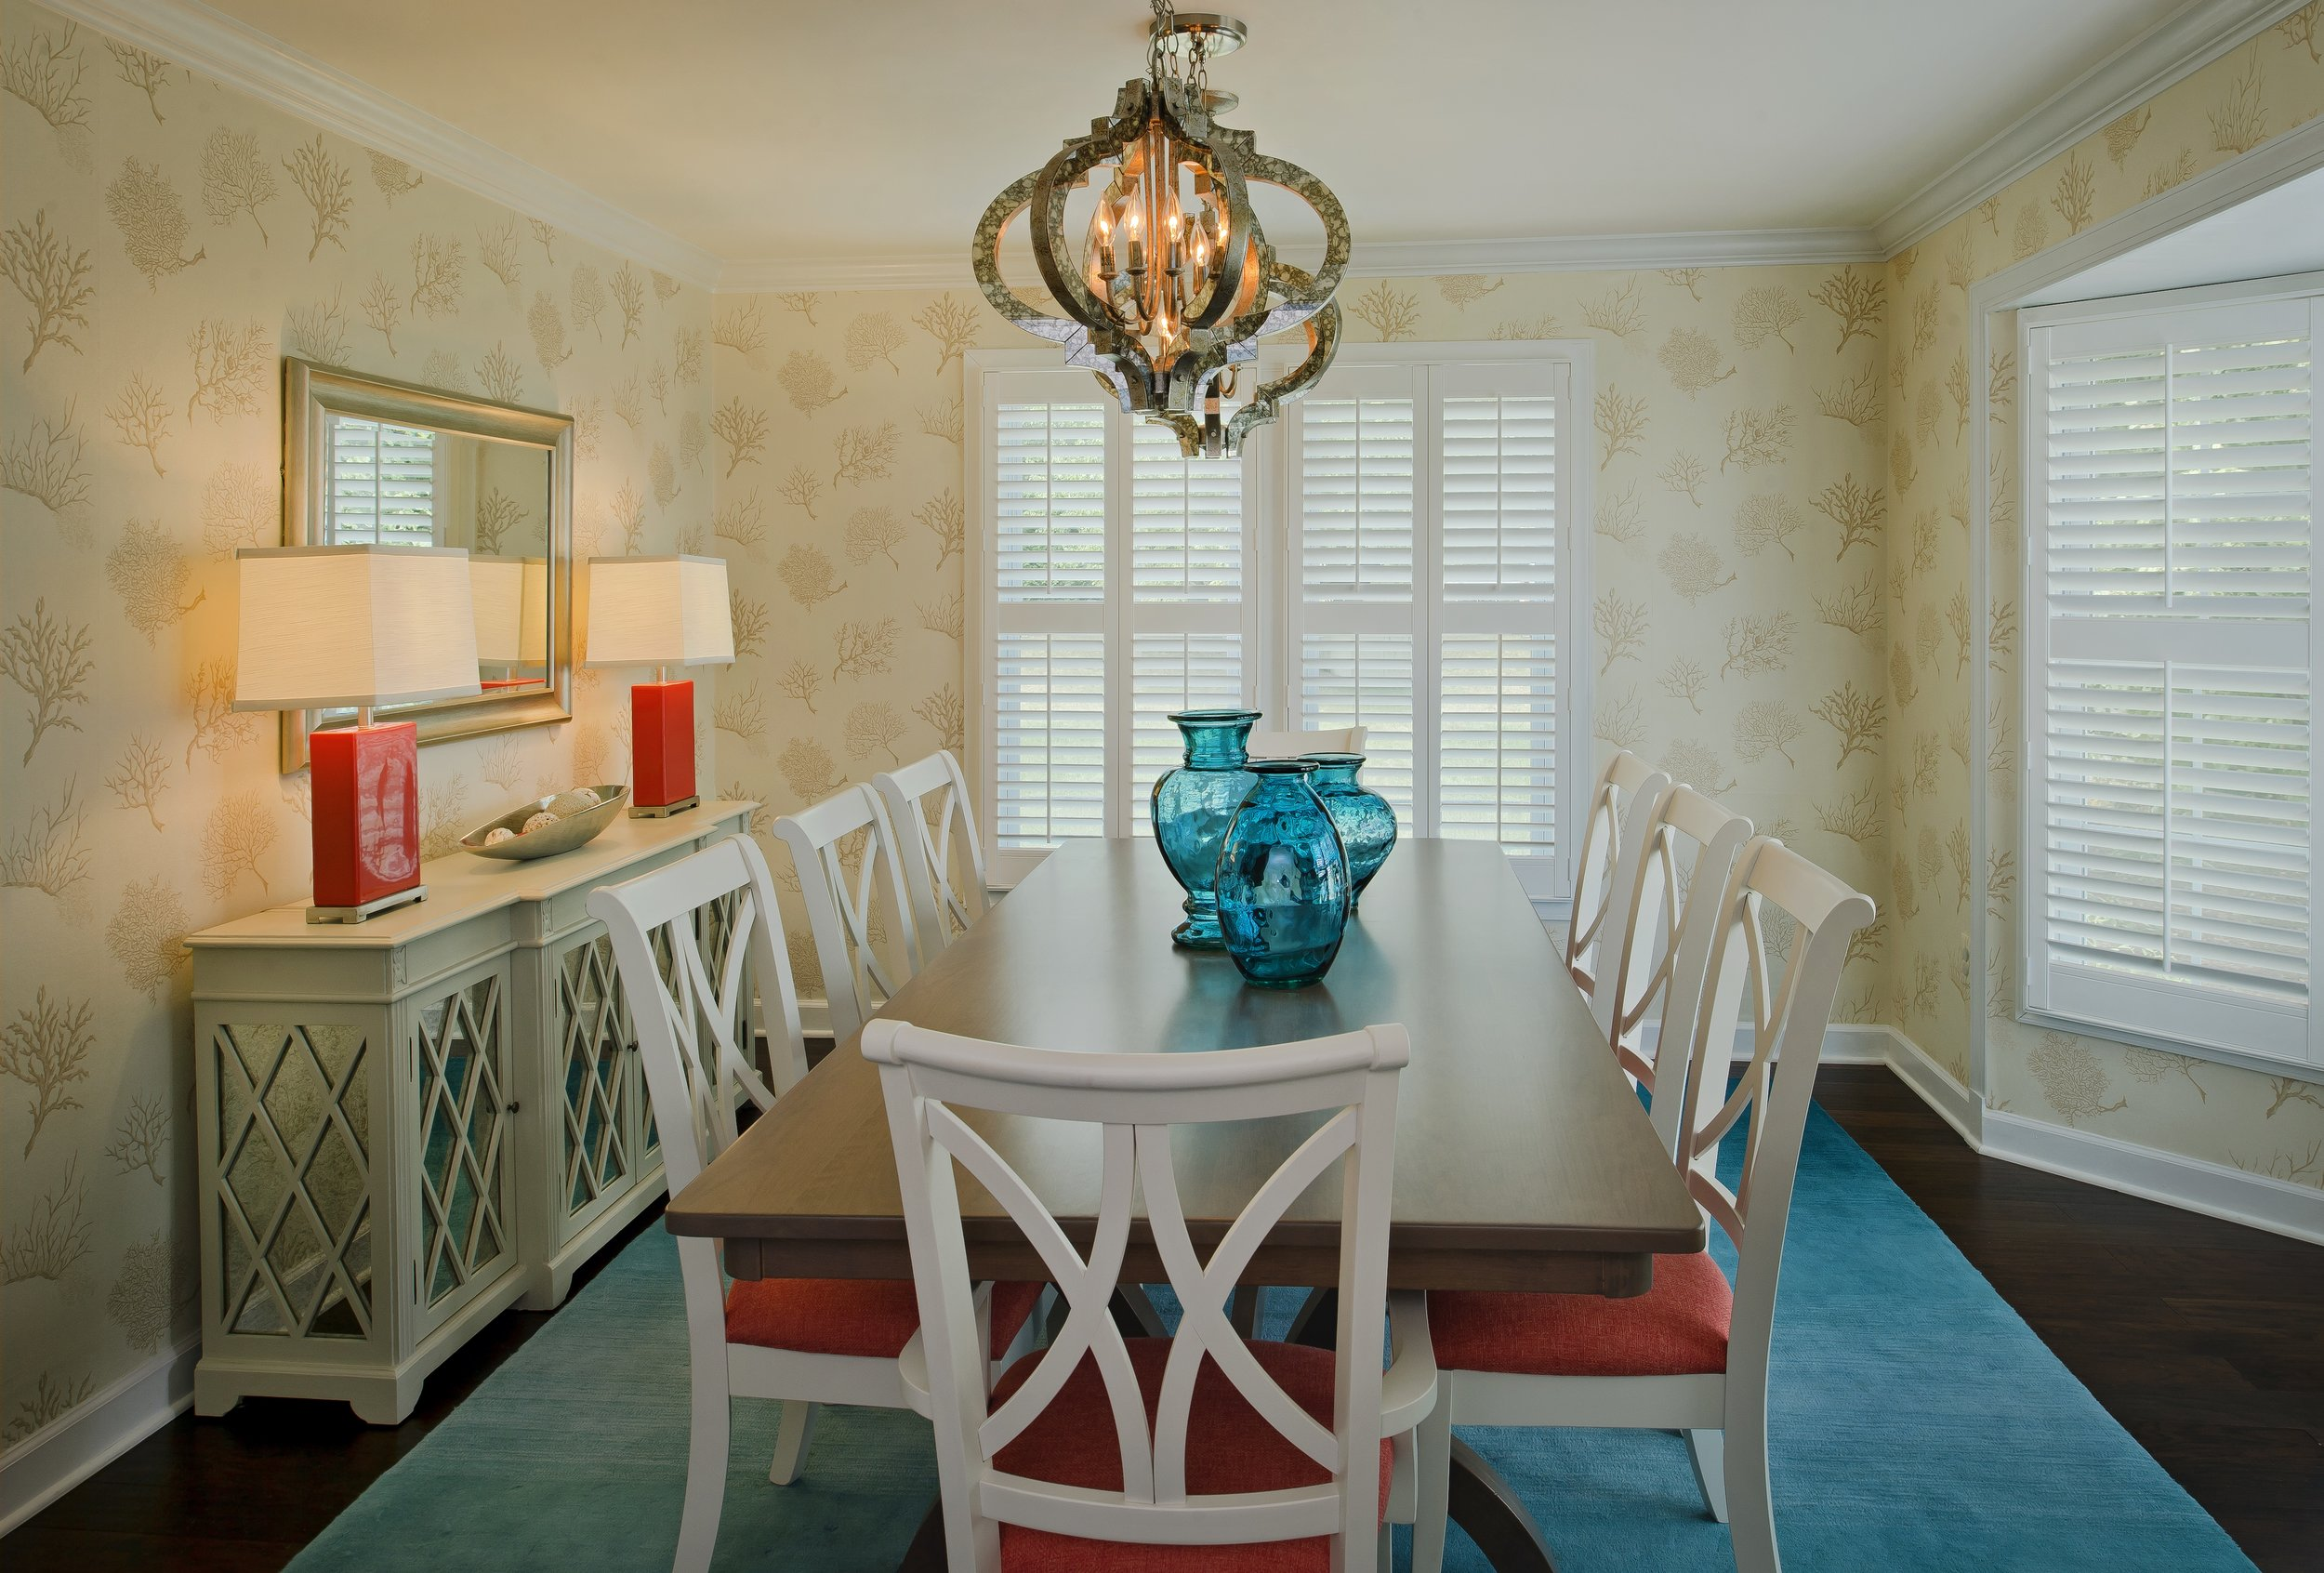 {To light this rectangle-shaped dining table we used two round chandeliers instead of one long one. We also added two lamps to the buffet, providing another level of light to the space.  Saddle Ridge Terrace  design by April Force Pardoe Interiors.}